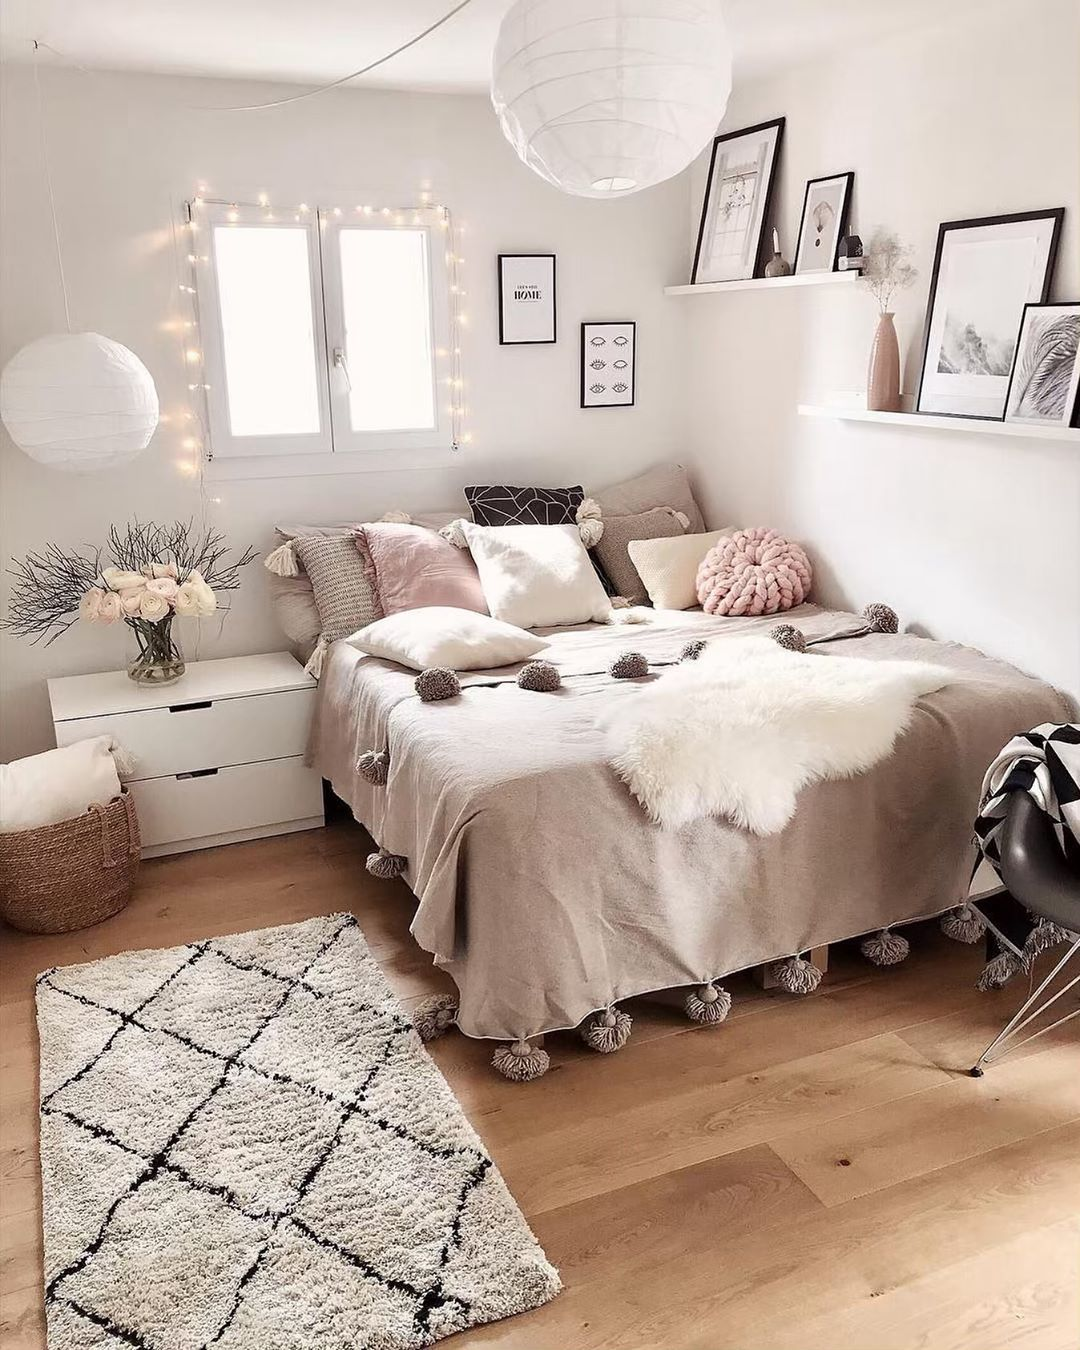 Love It Yay Or Nay Follow Mybedroomgoals For More Photo From Homestylepassi Beddingset B Bedroom Interior Room Inspiration Bedroom Room Ideas Bedroom Most cozy bedroom ideas